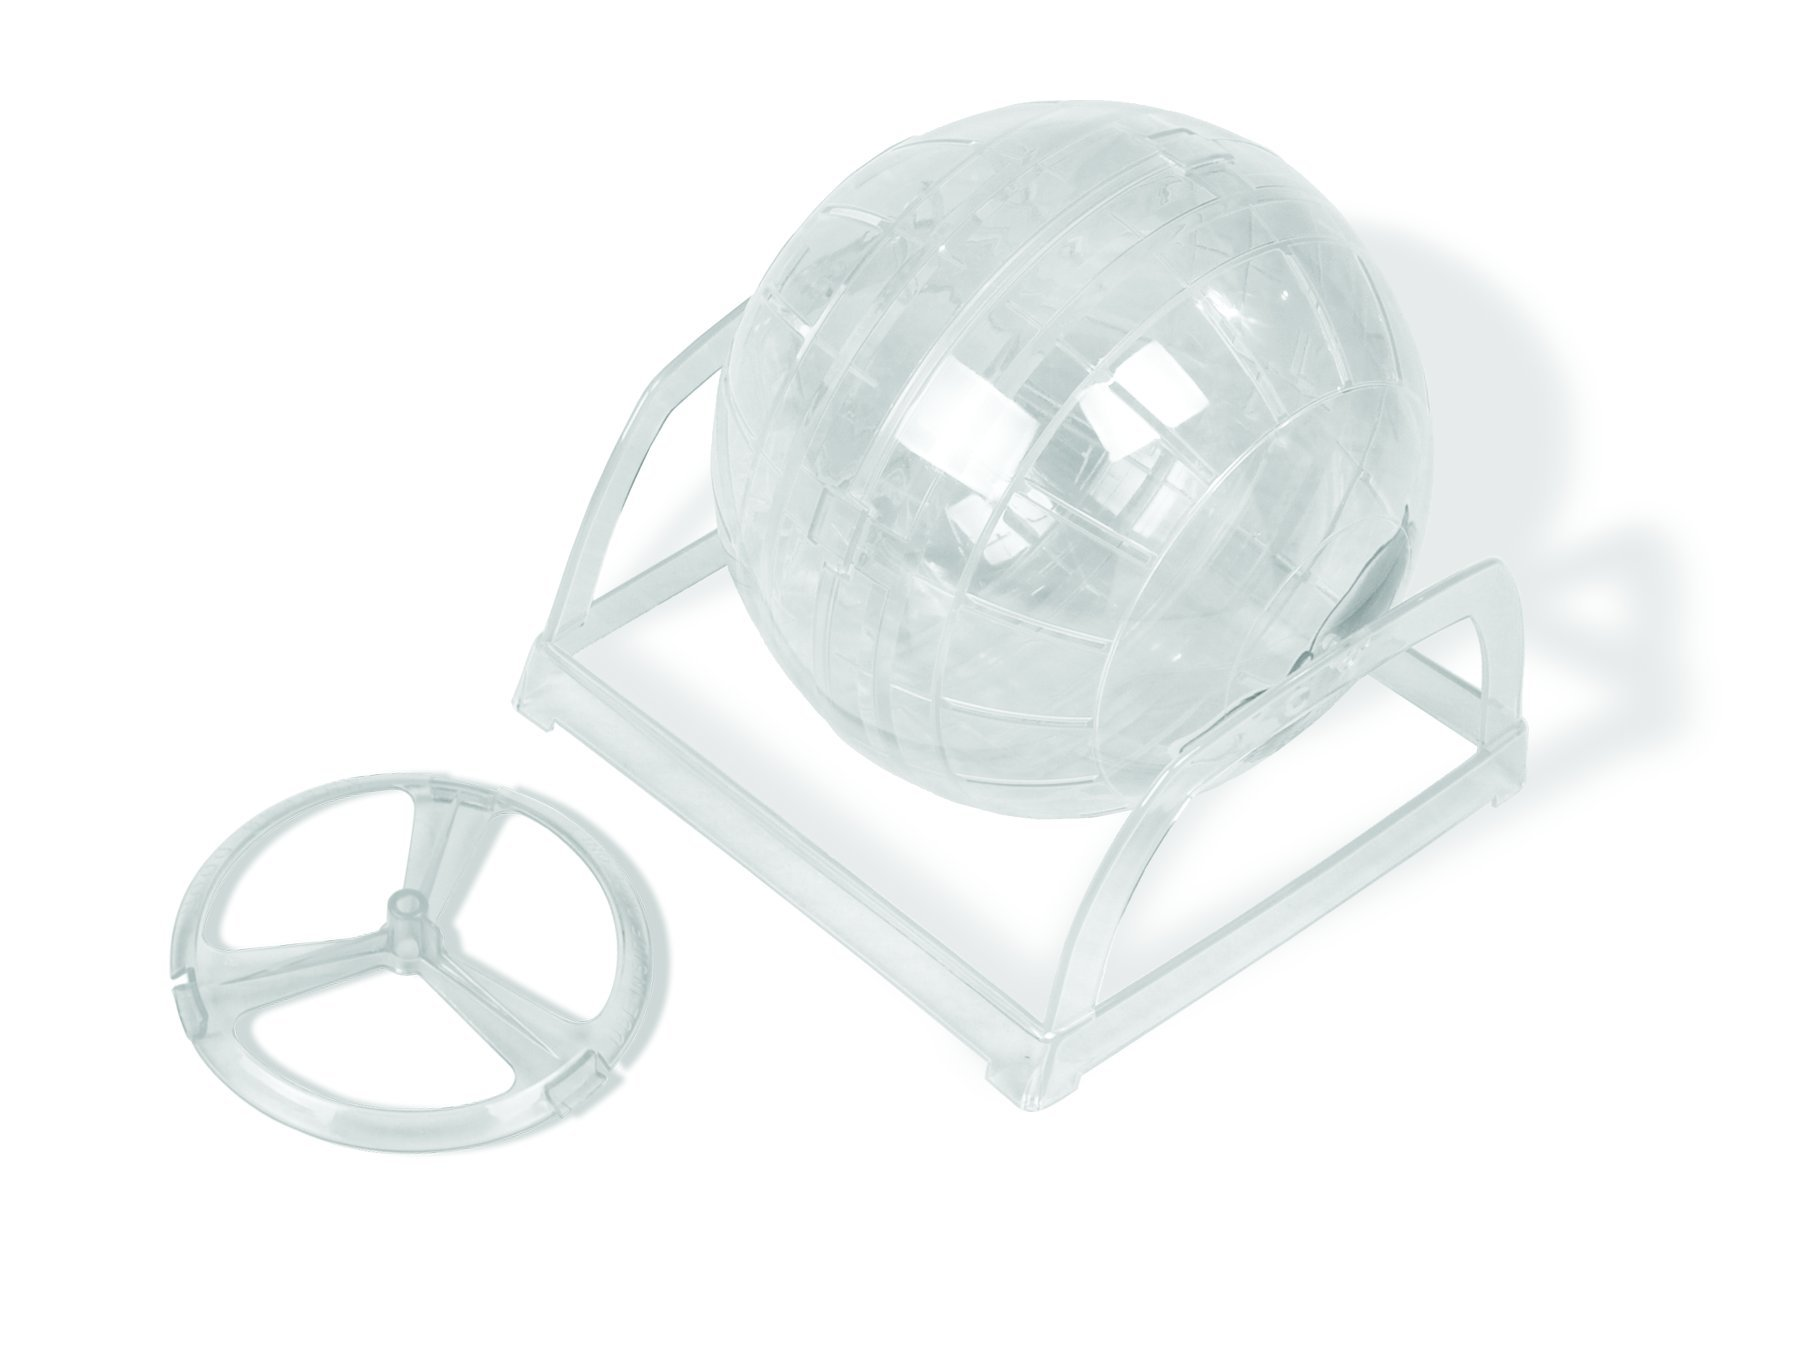 Van Ness Hamster Ball with Stand by Van Ness